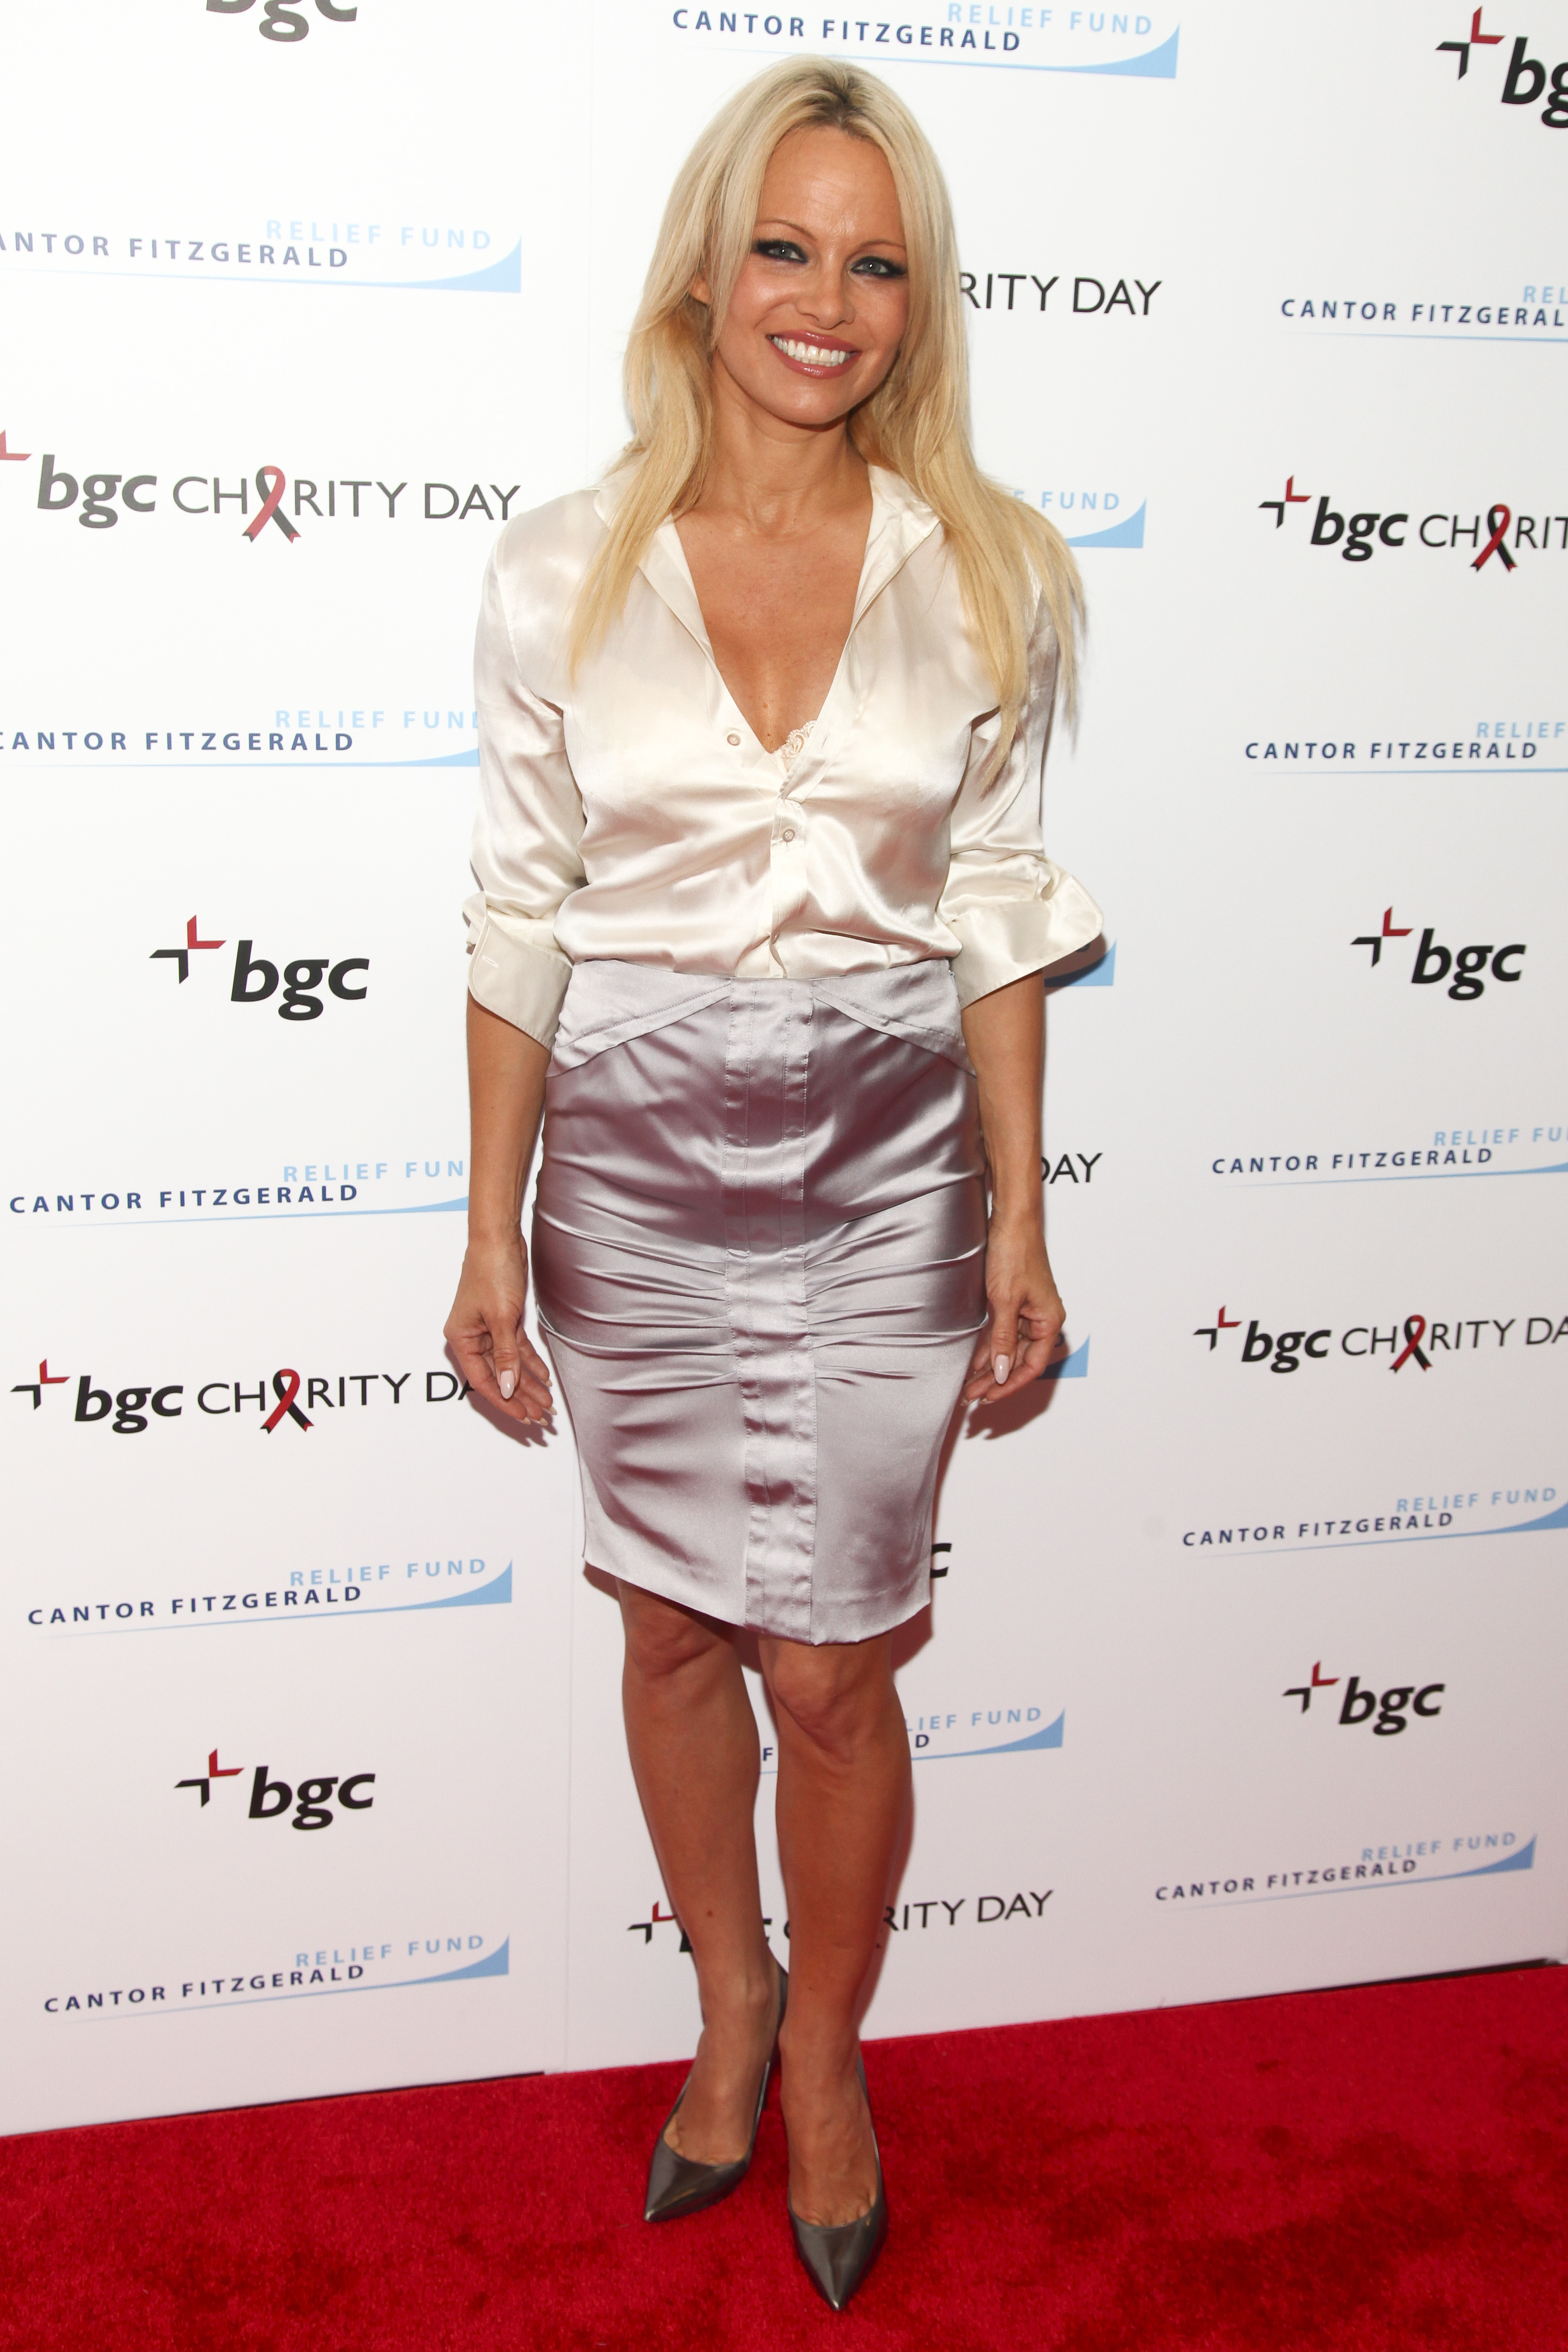 Pamela Anderson is saving the world, one glittered shoe at a time